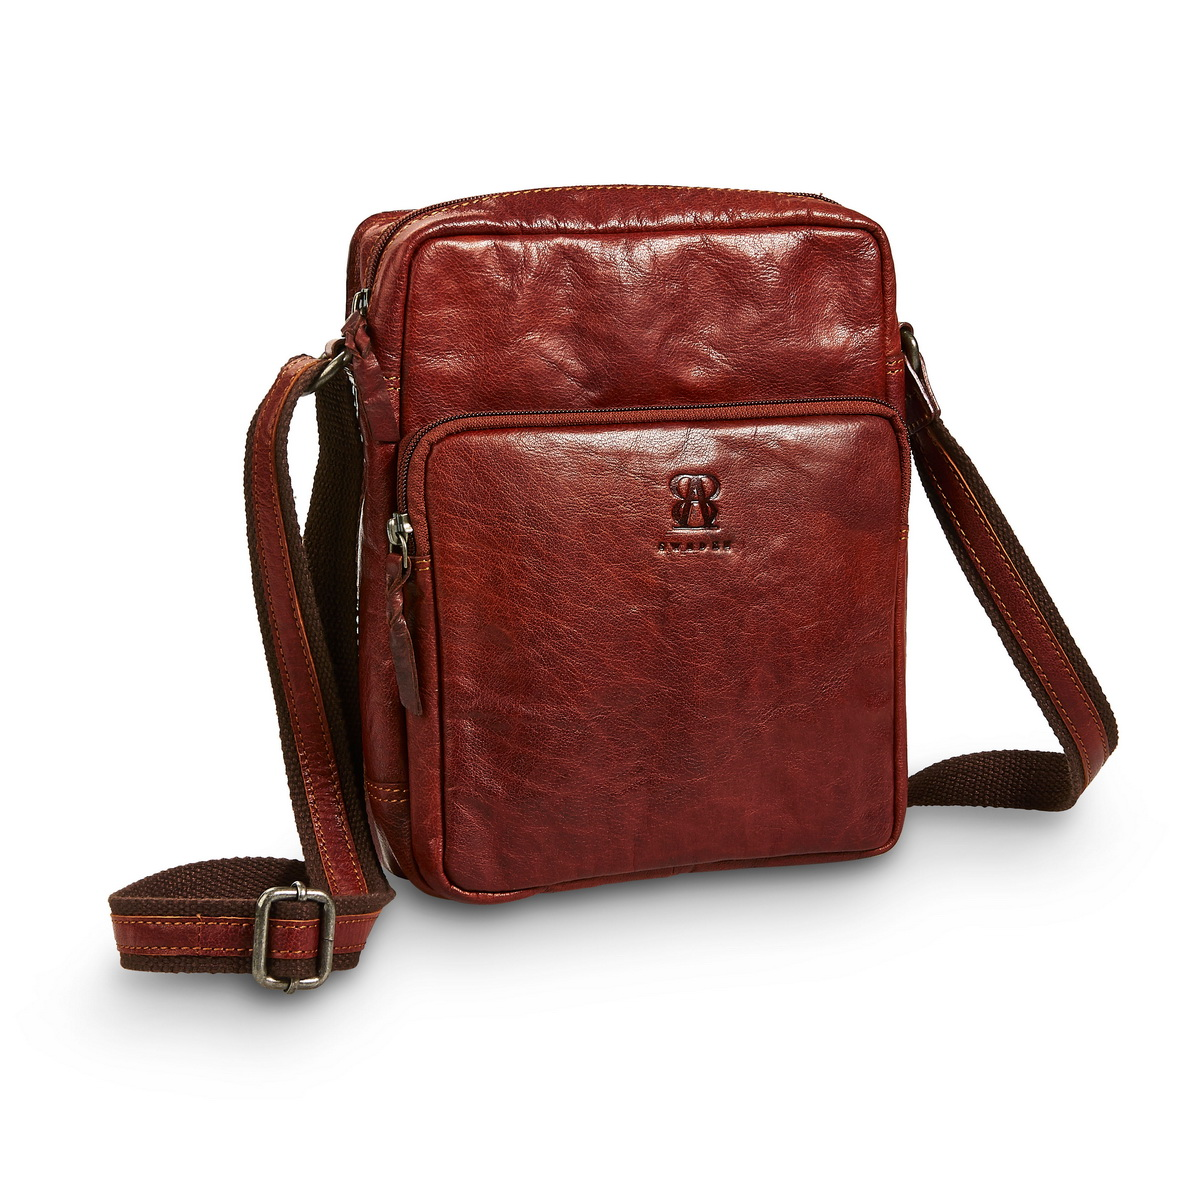 Brown Leather Shoulder bag mini from B away